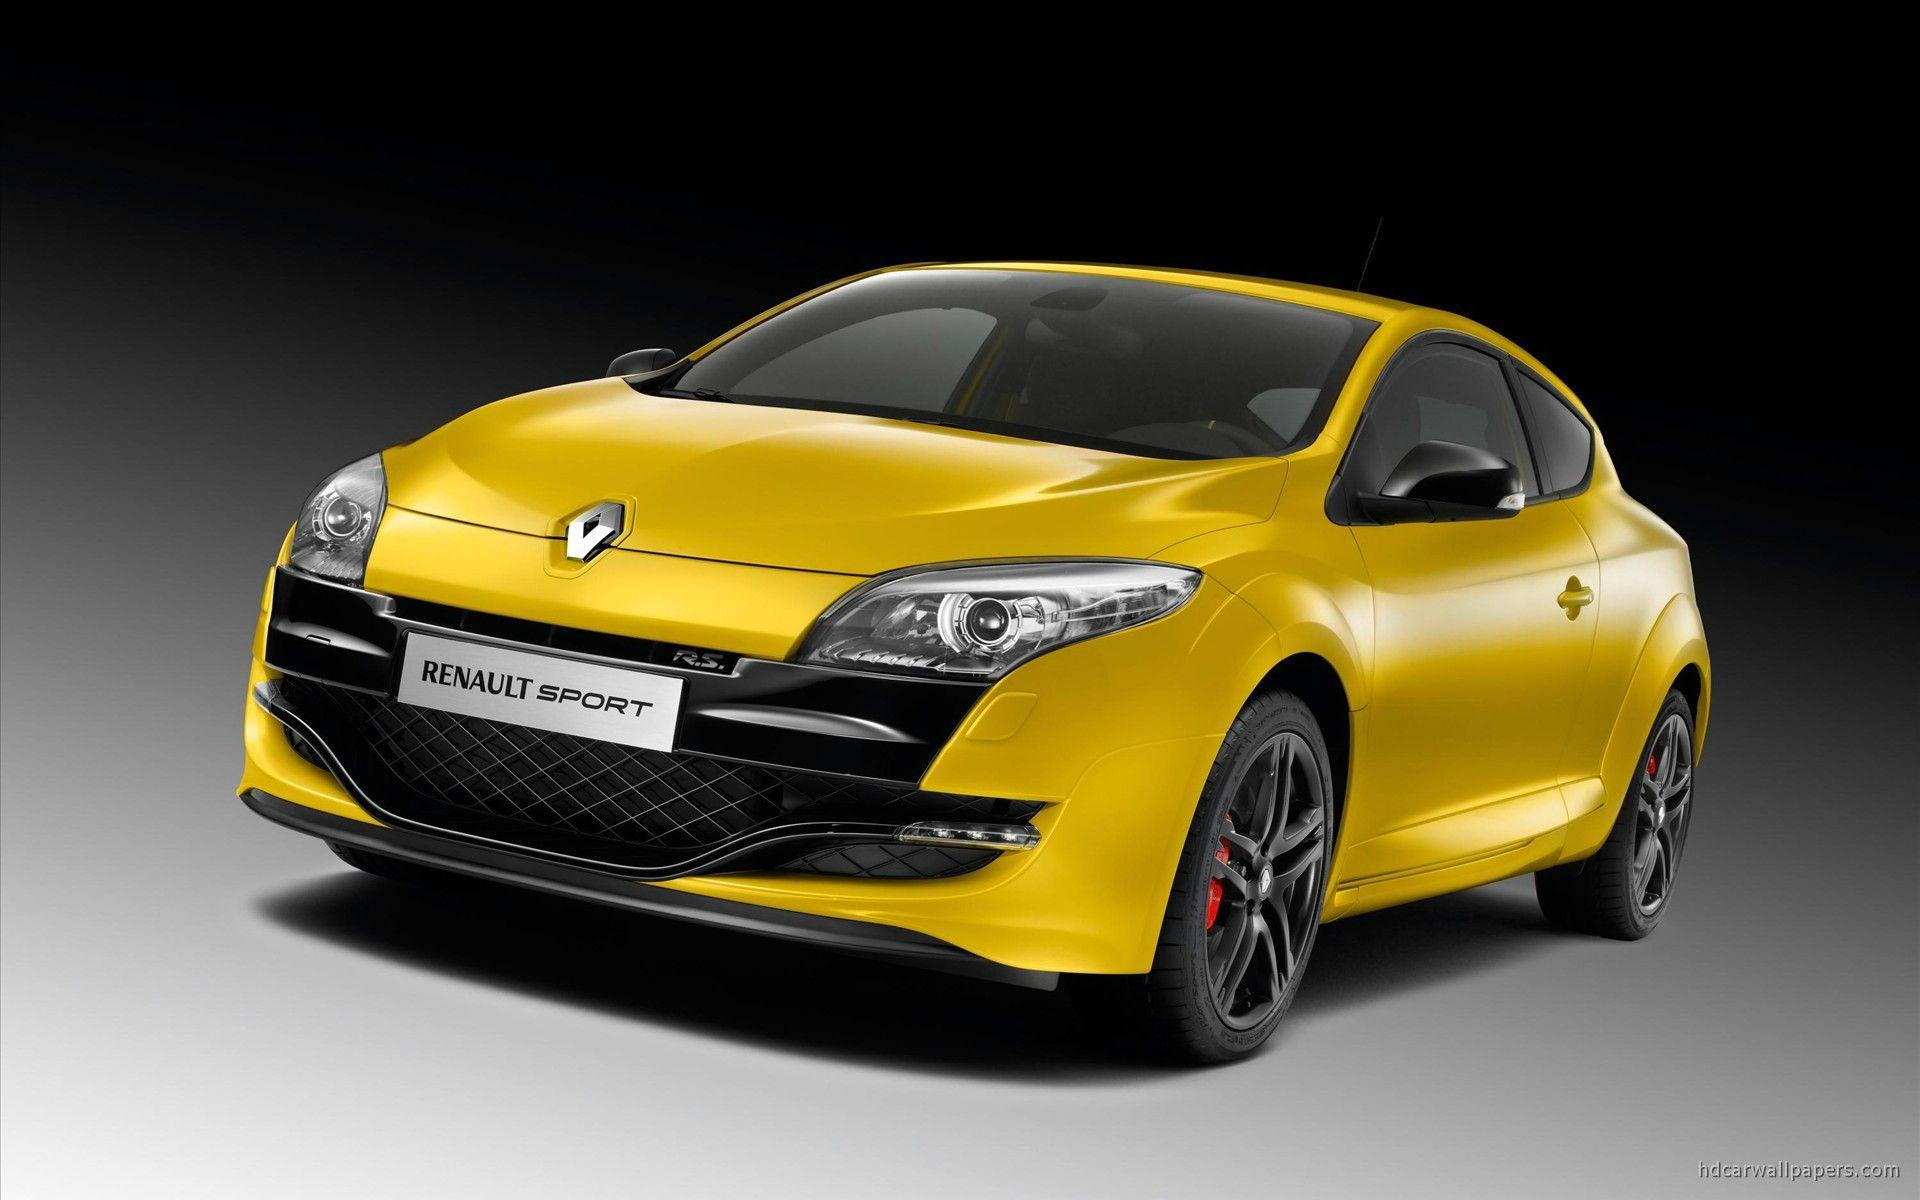 2010 New Megane Renault Sport Wallpapers